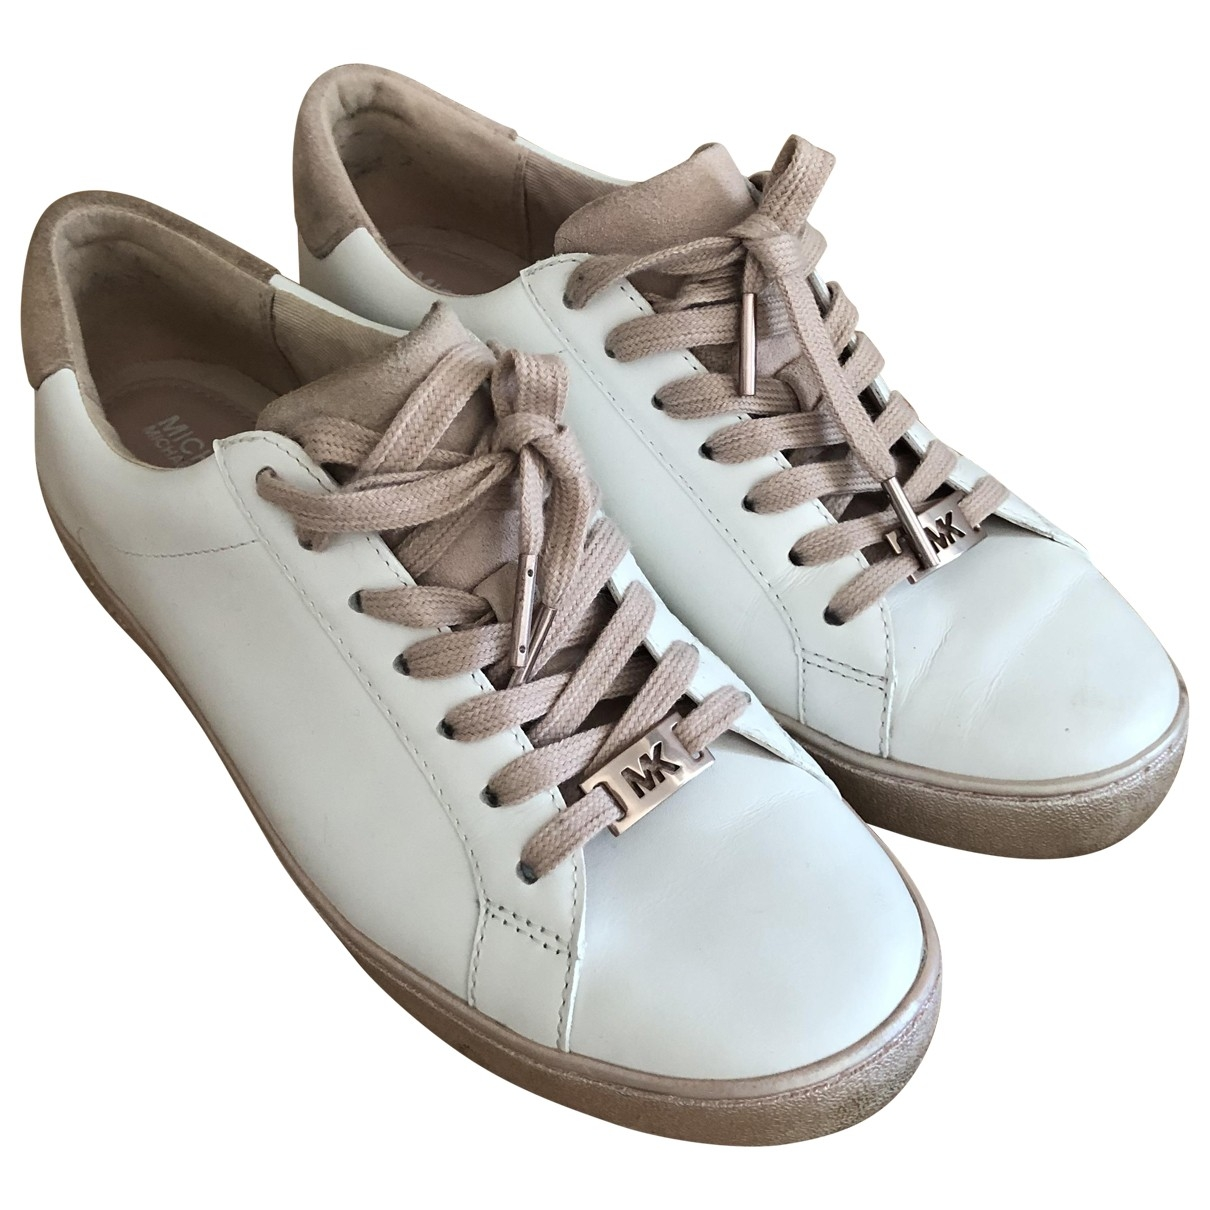 Michael Kors \N White Leather Trainers for Women 7.5 US